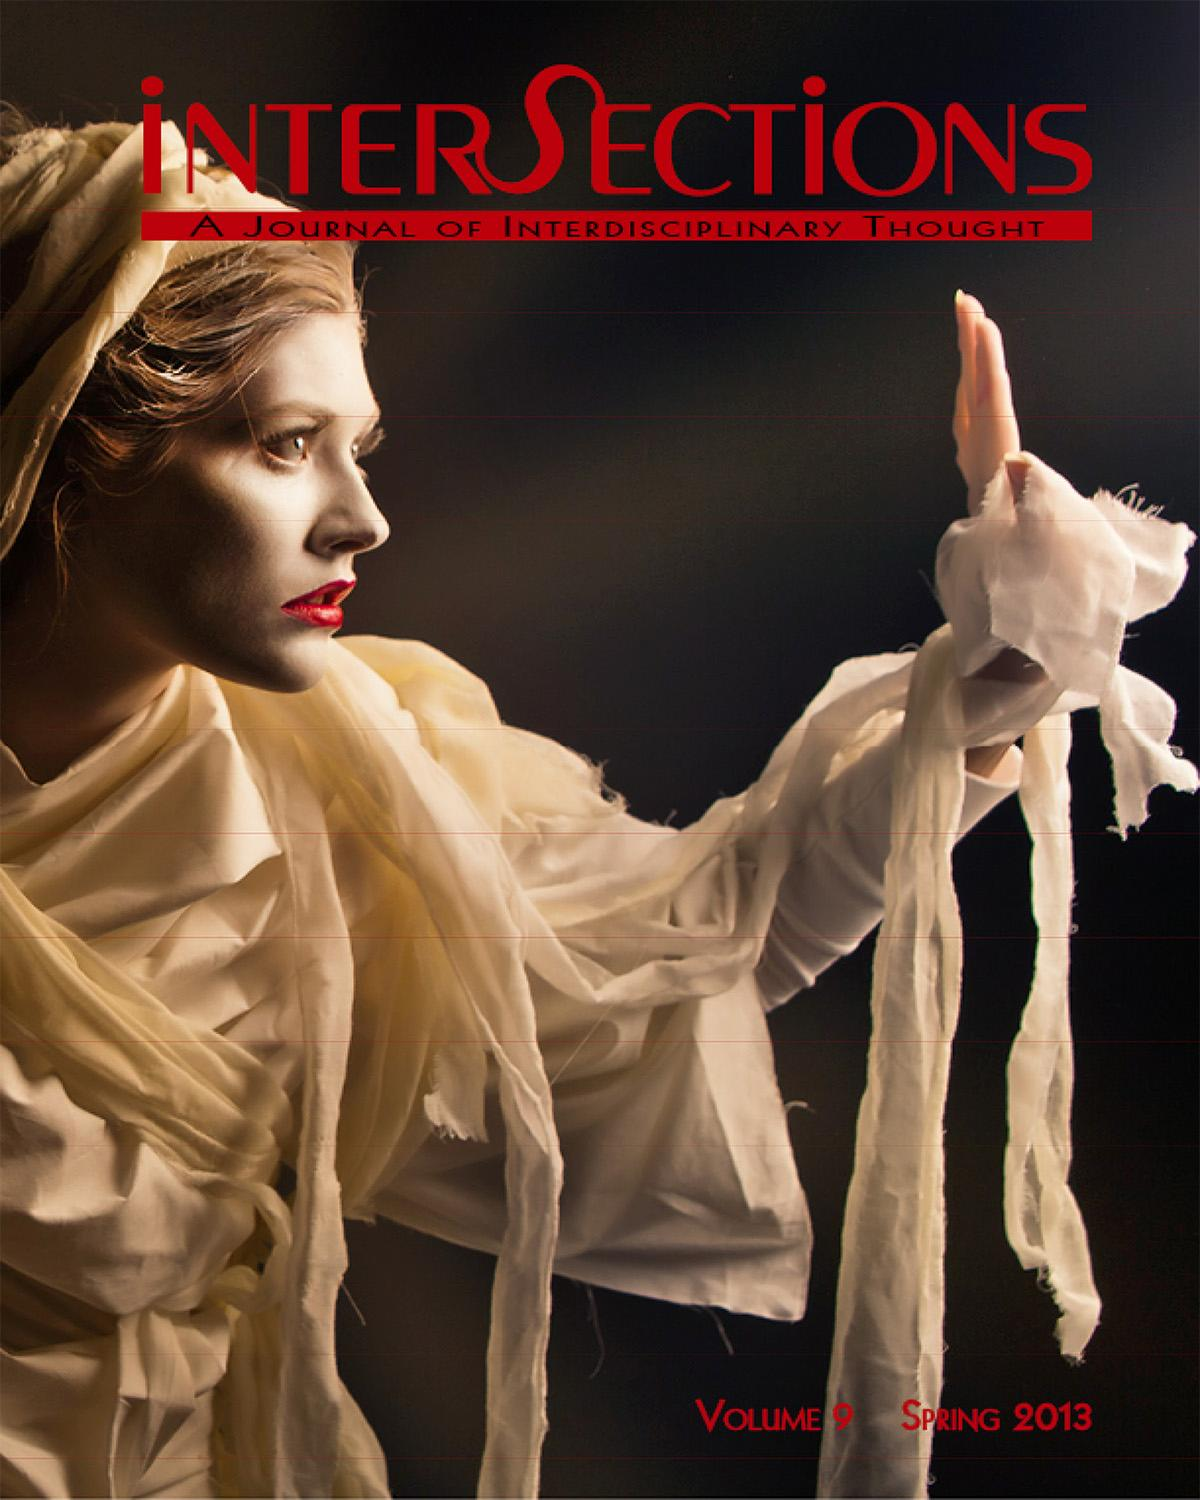 Intersections Volume 9 Issue 1